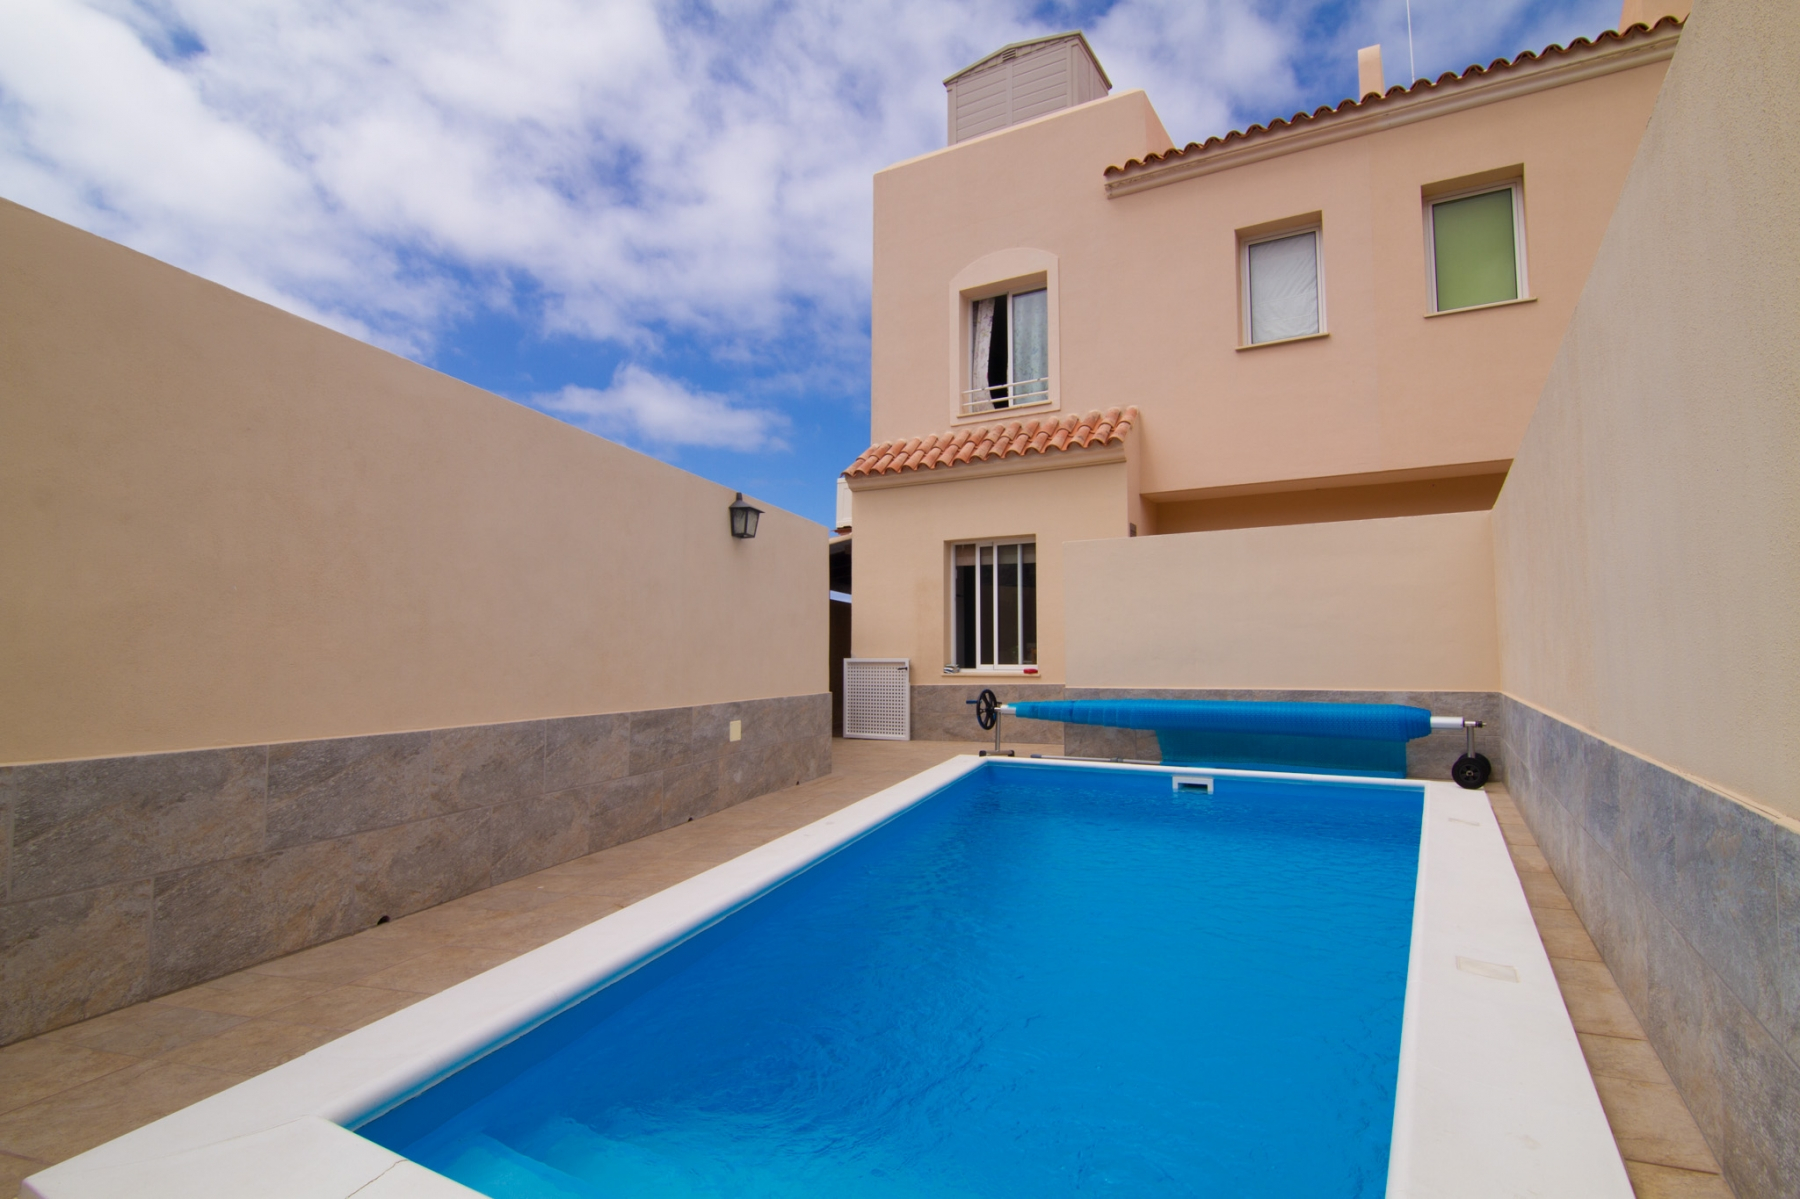 Properties for Sale in Tenerife, Canary Islands, Spain | SylkWayStar Real Estate. 4 bedrooms Townhouse - El Madroñal . Image-26219